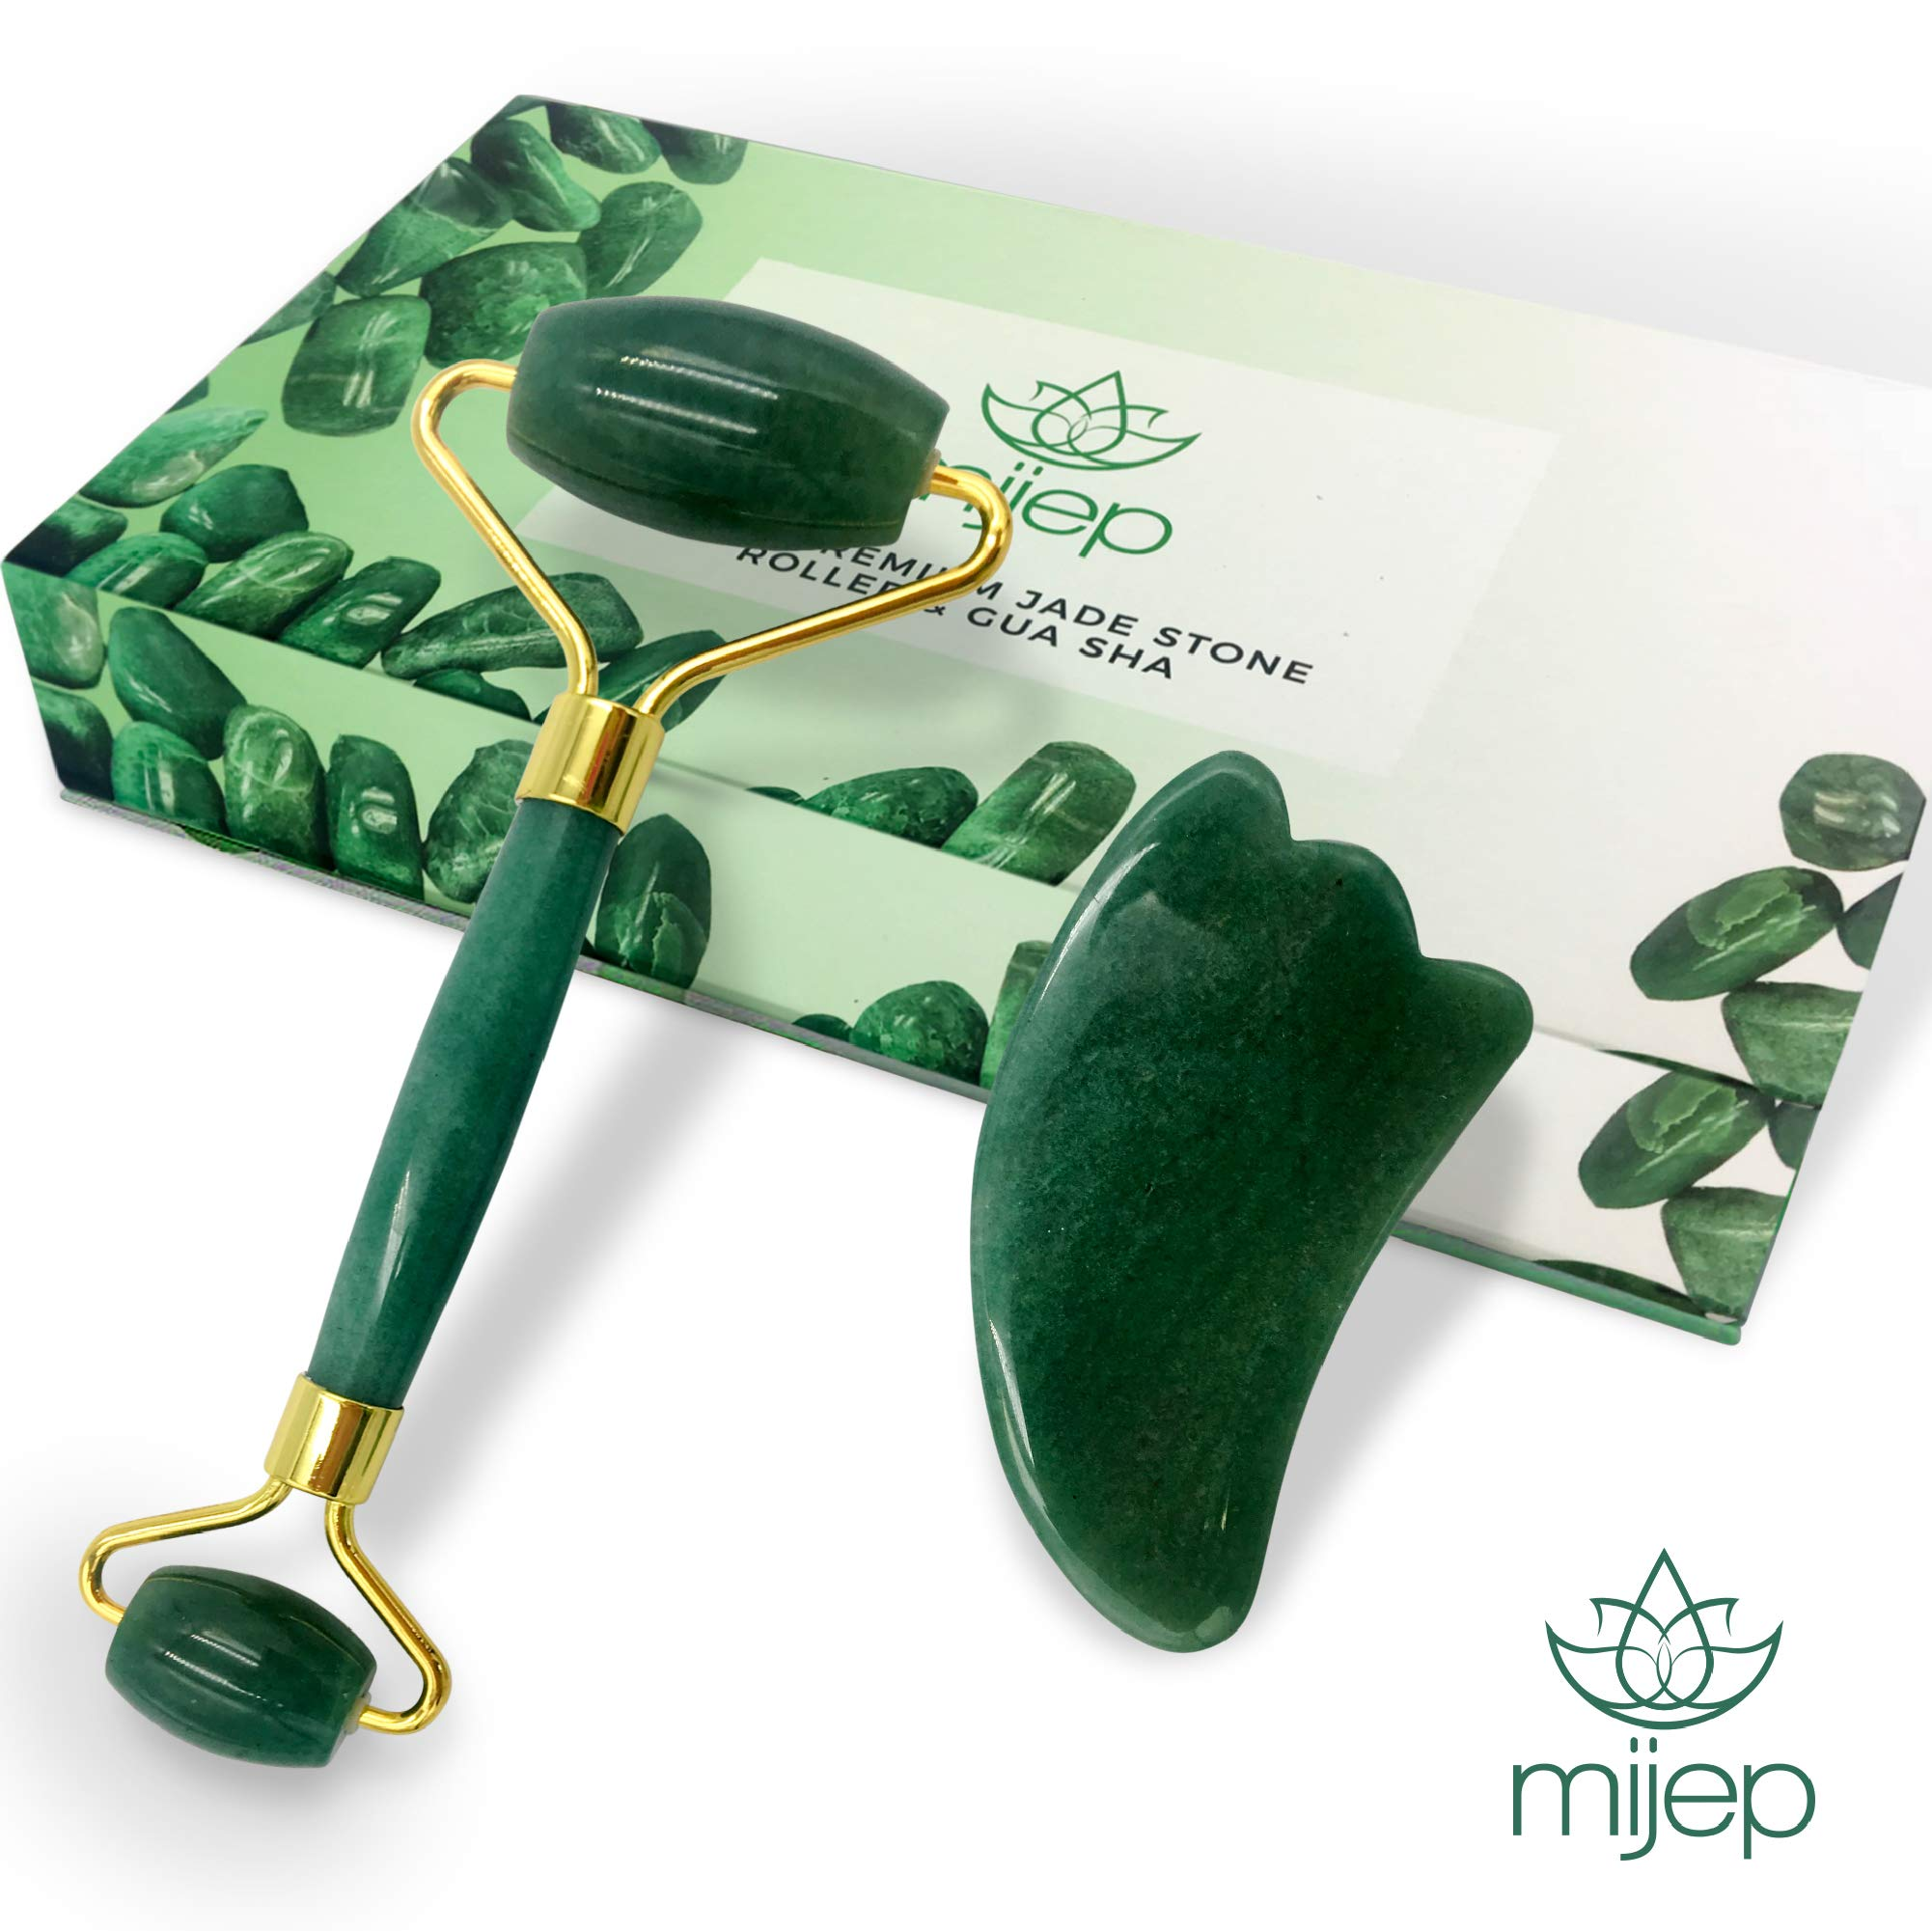 Jade Roller for Face Real Jade 100% Jade - Premium Quality Jade Roller for Face and Jade Gua Sha. Stunning Box Set perfect for Gift.